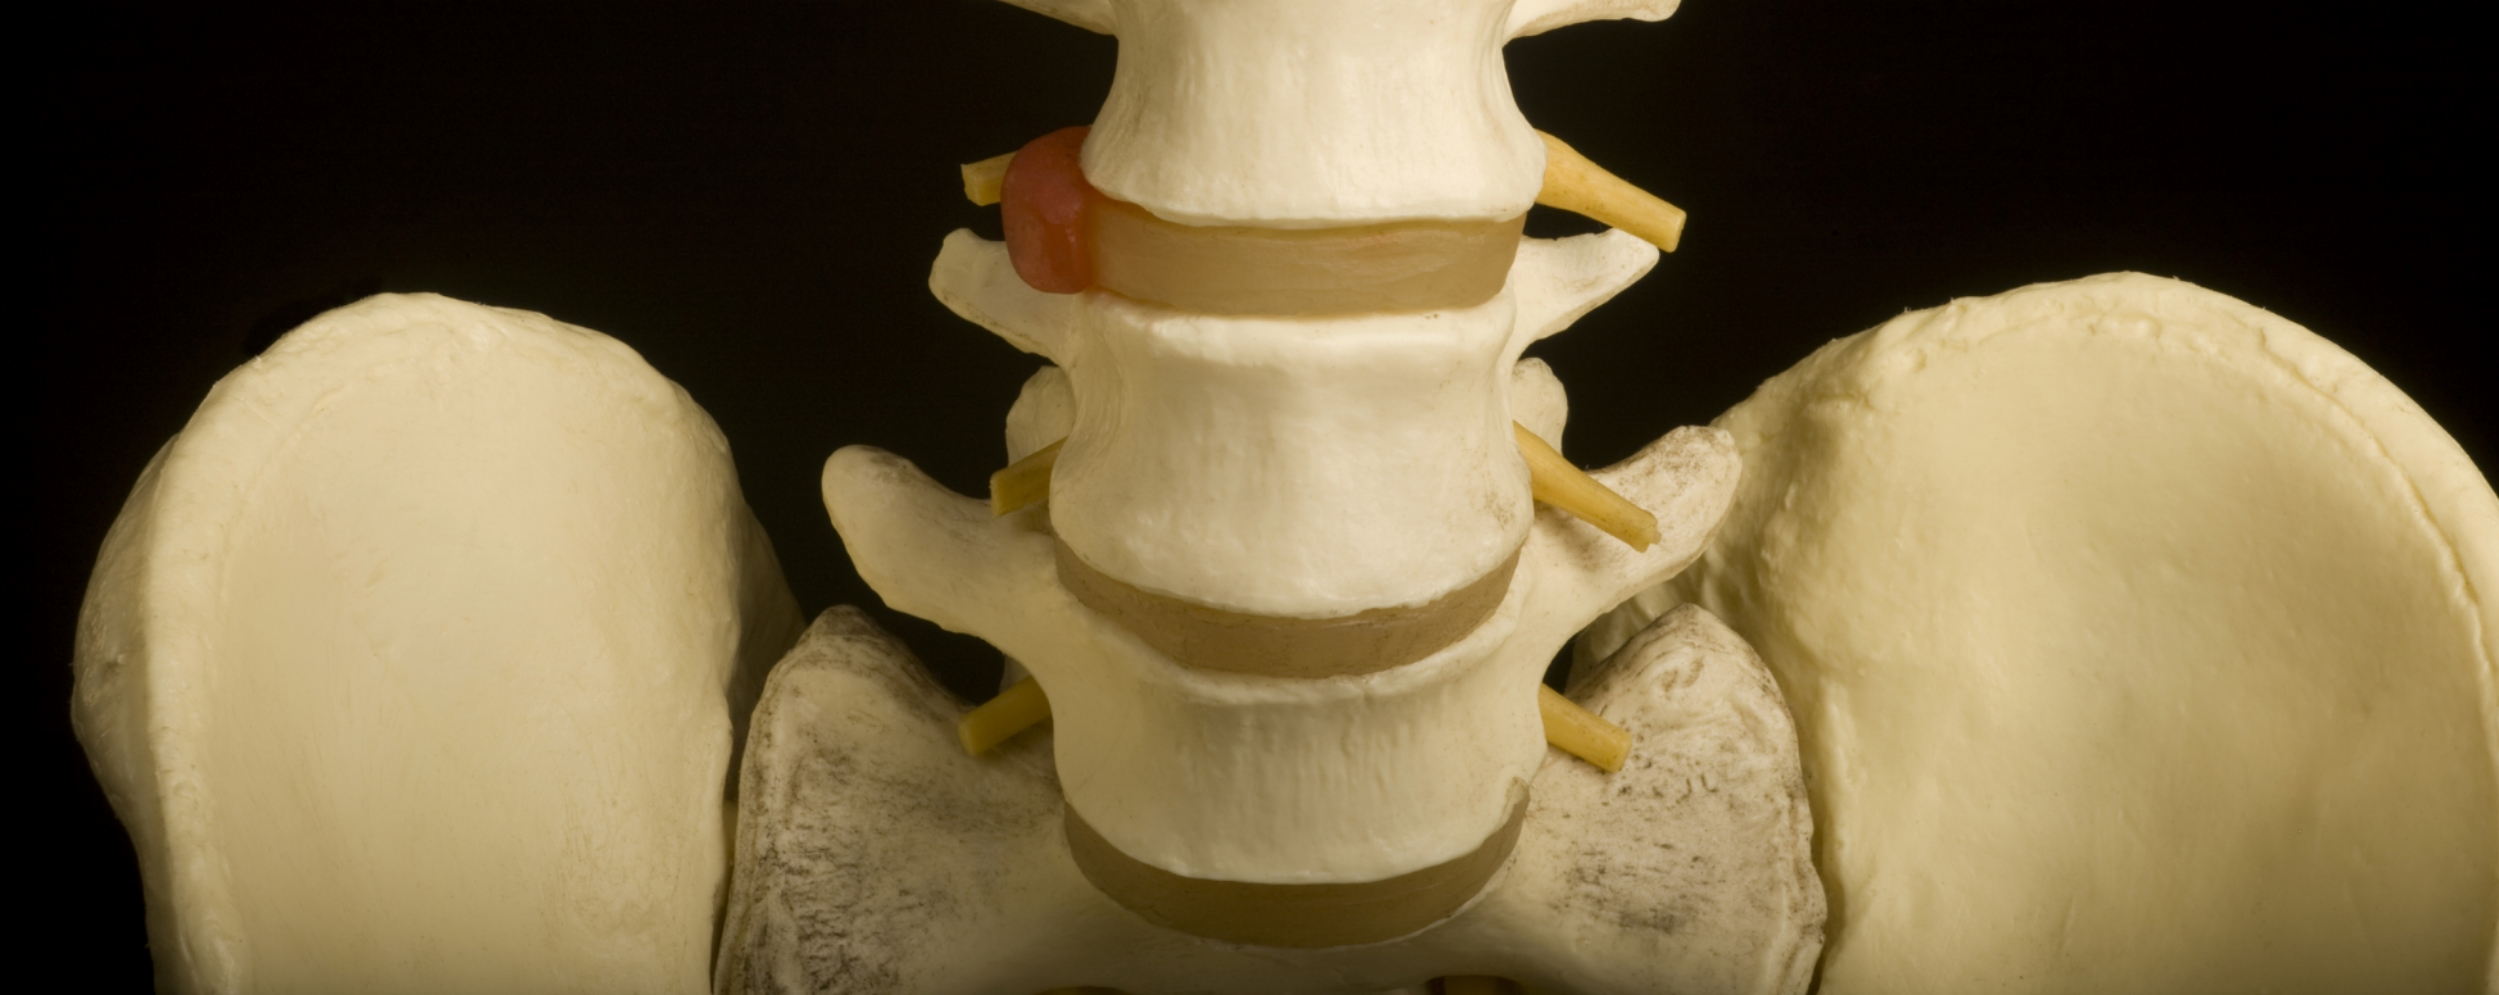 Movement of the pelvis is essential for a healthy spine